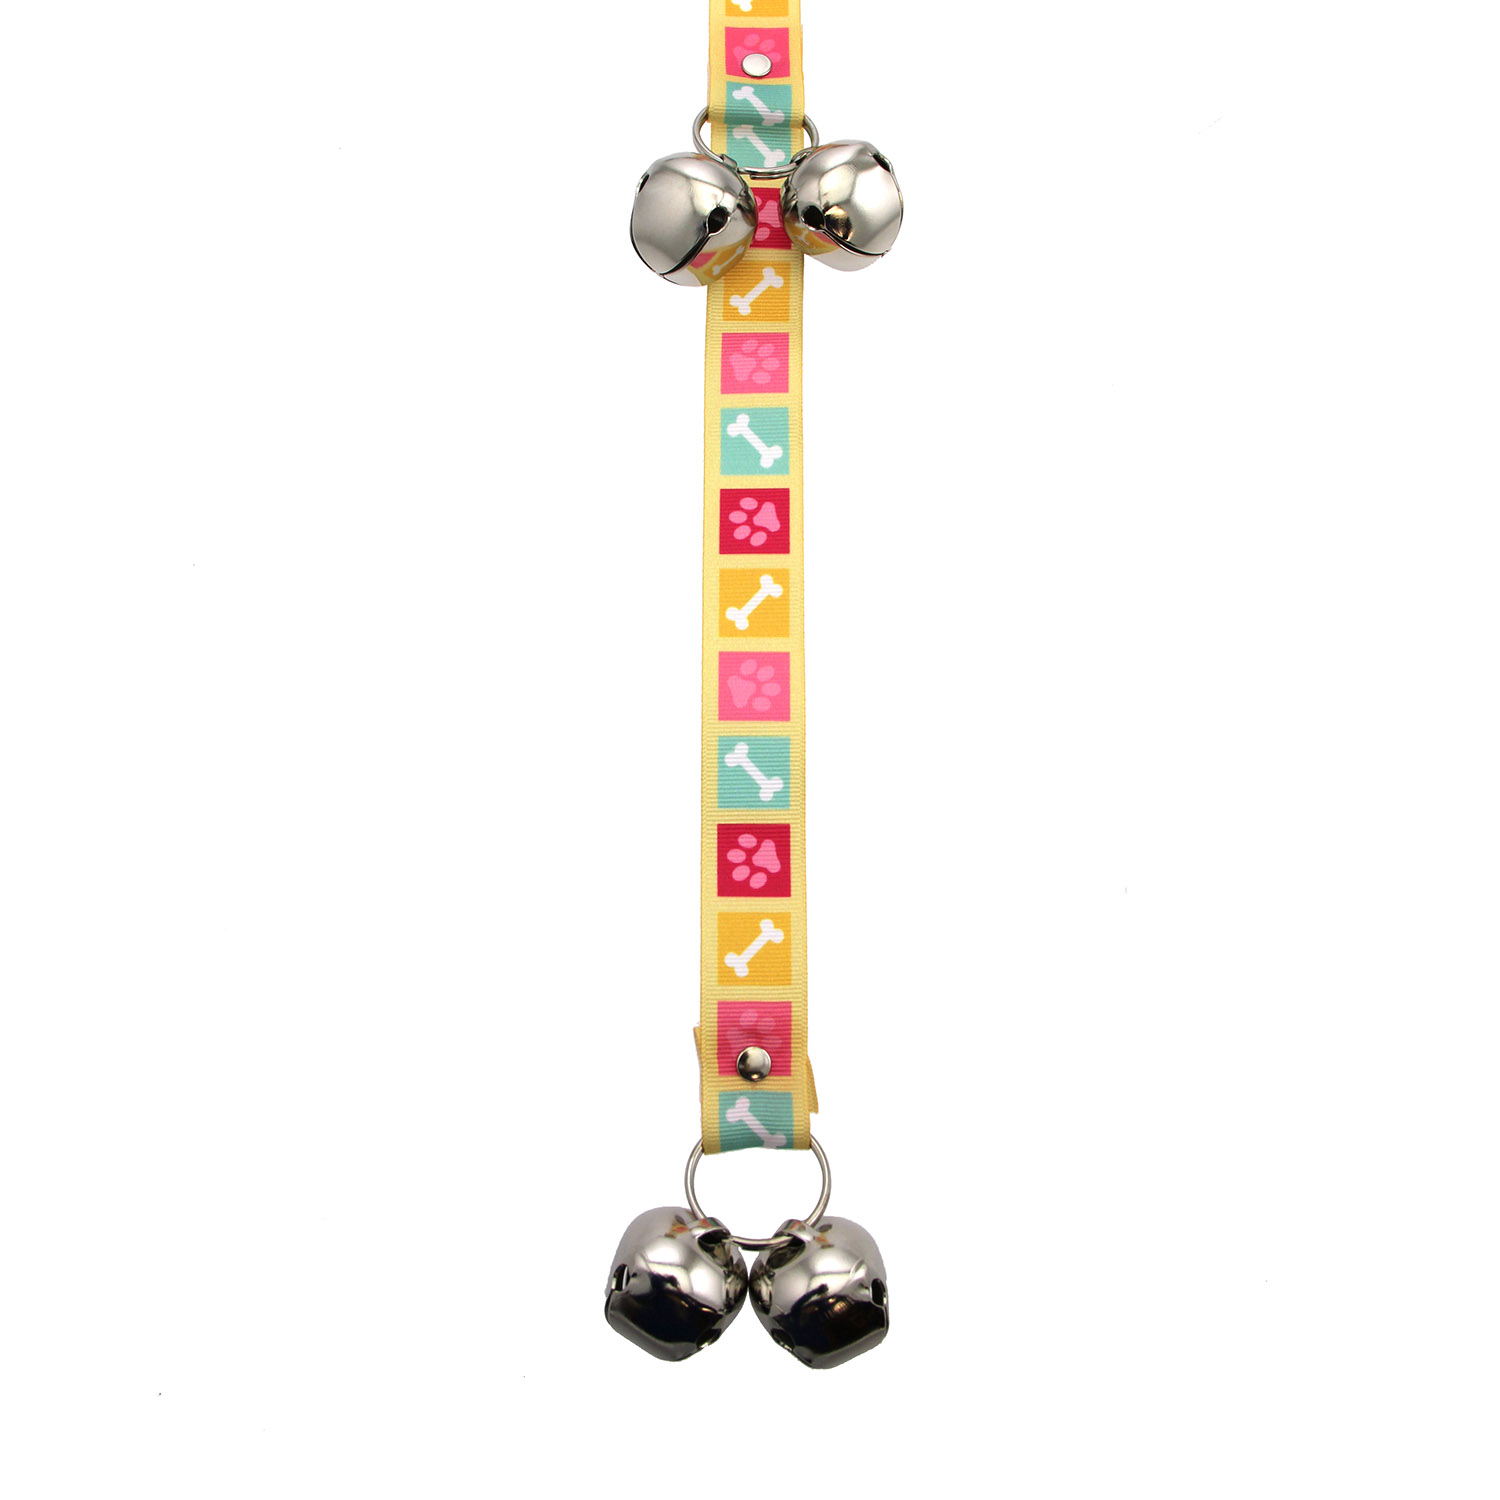 Poochie Bells Dog Doorbell Potty Alert - Bone Appetite Pink